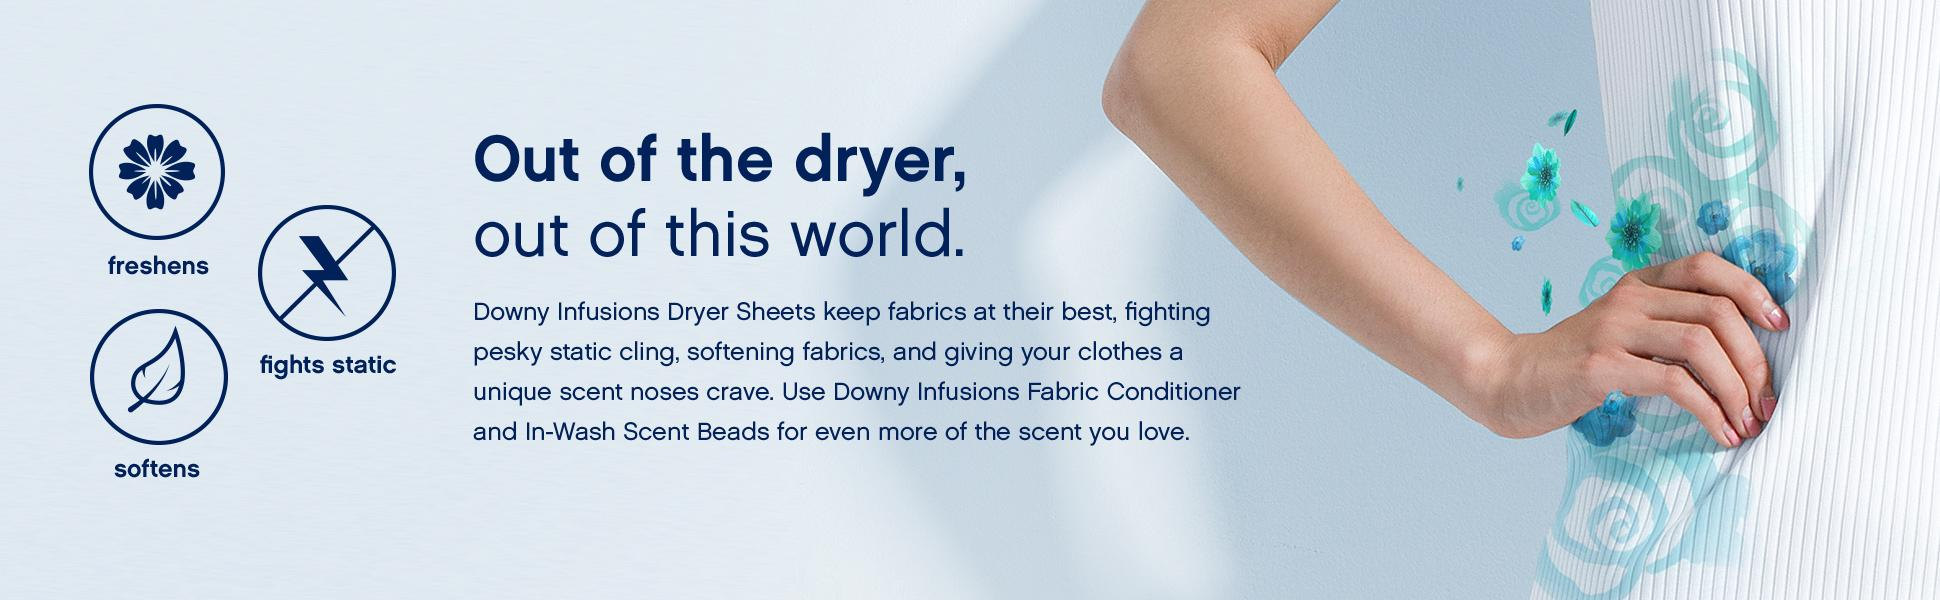 How Much Fabric Softener To Use Amazoncom Downy Infusions Lavender Serenity Fabric Softener